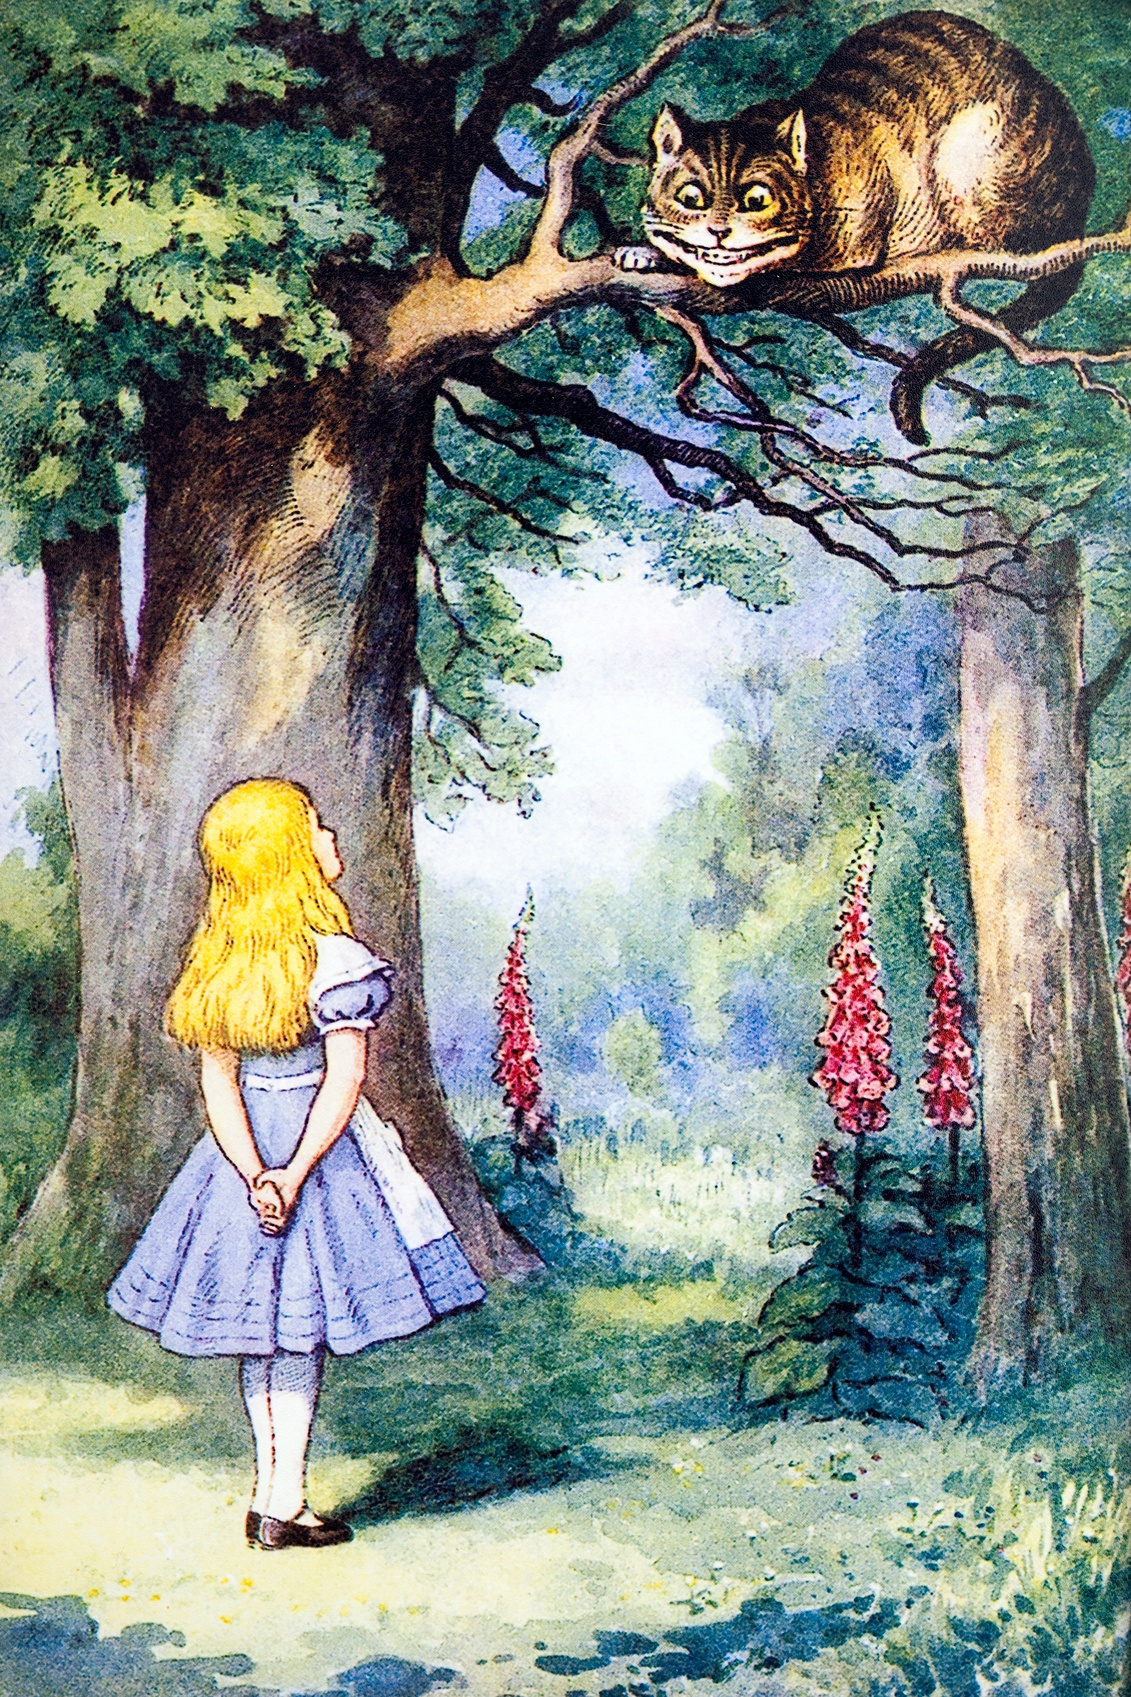 alice-in-wonderland-can-teach-ceos-about-business